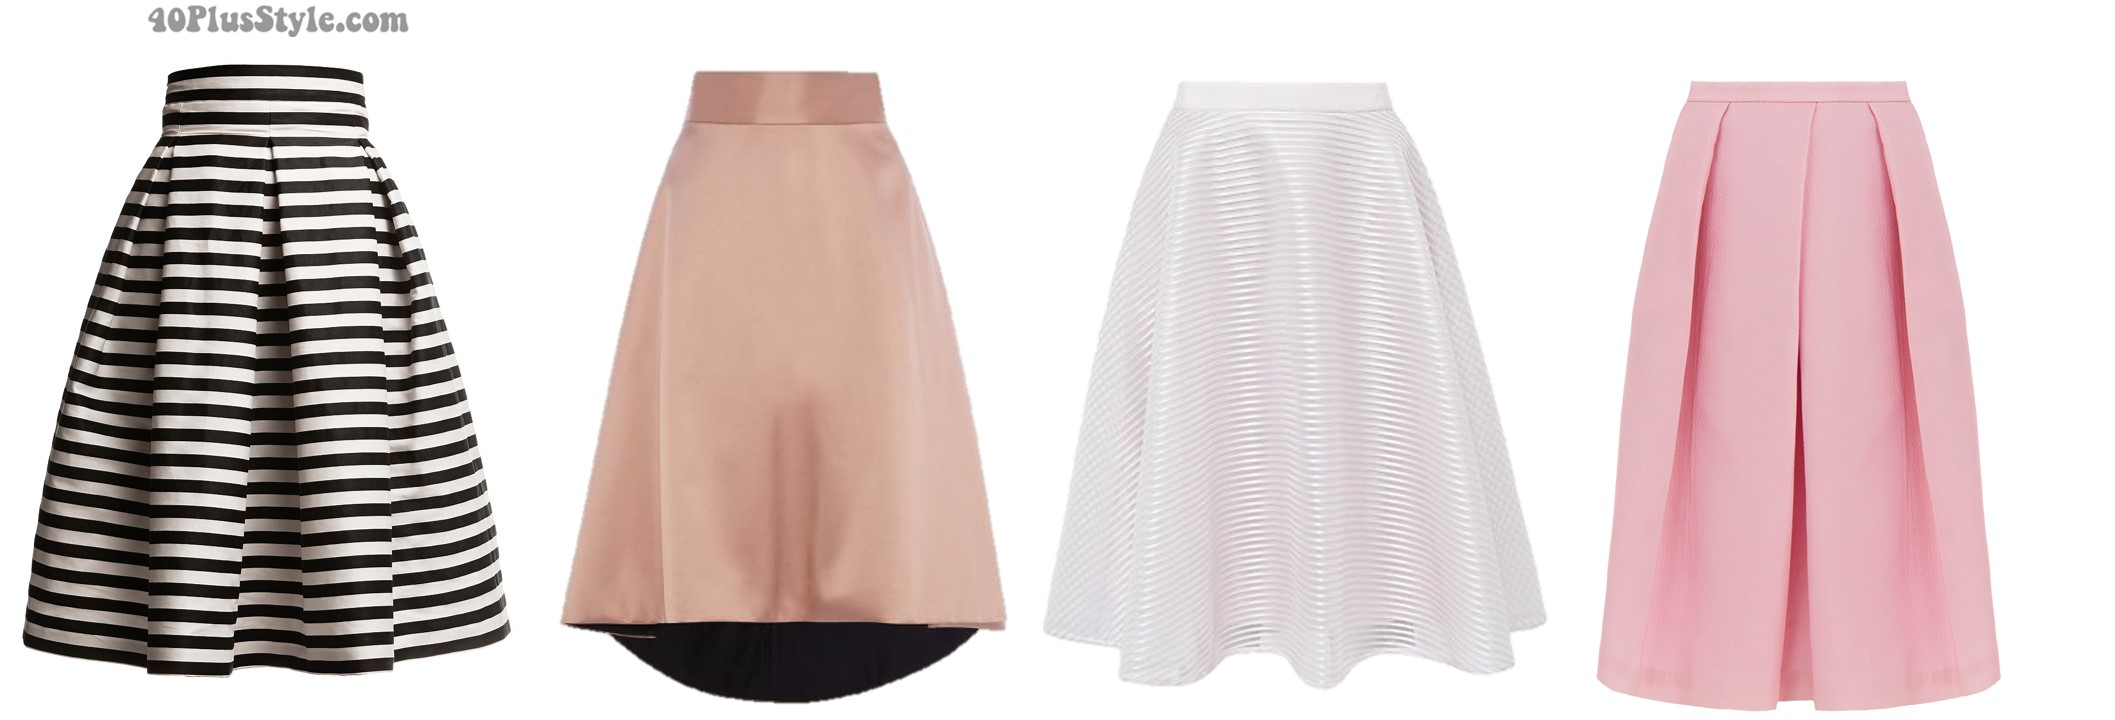 Inverted triangle body shape spring skirts looks a-line   40plusstyle.com